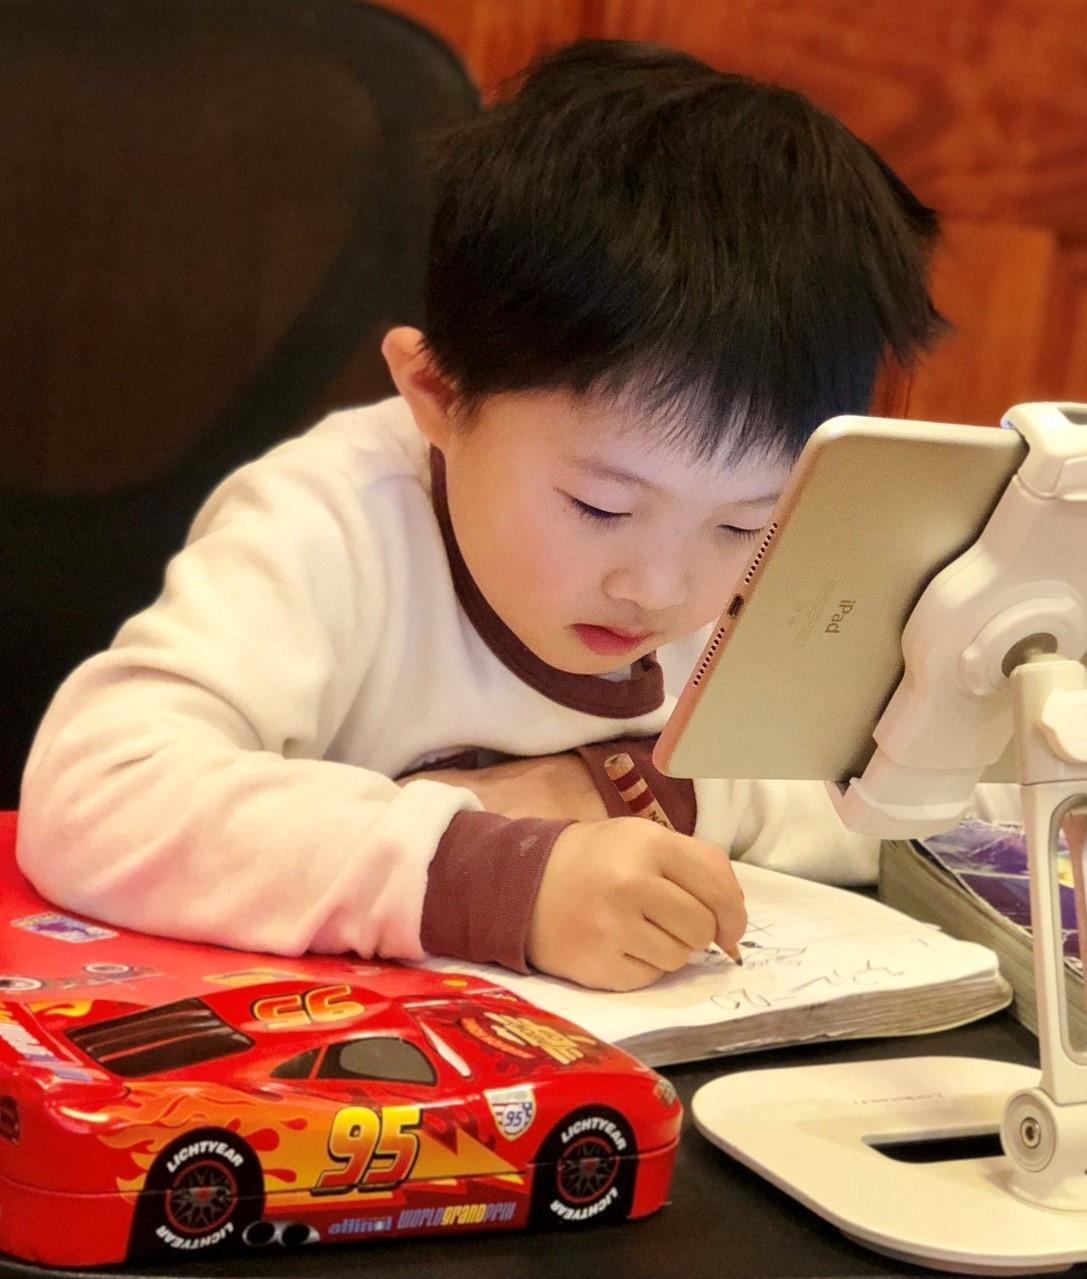 Student at home during remote learning. He is at his desk with his ipad and is writing in a notebook.